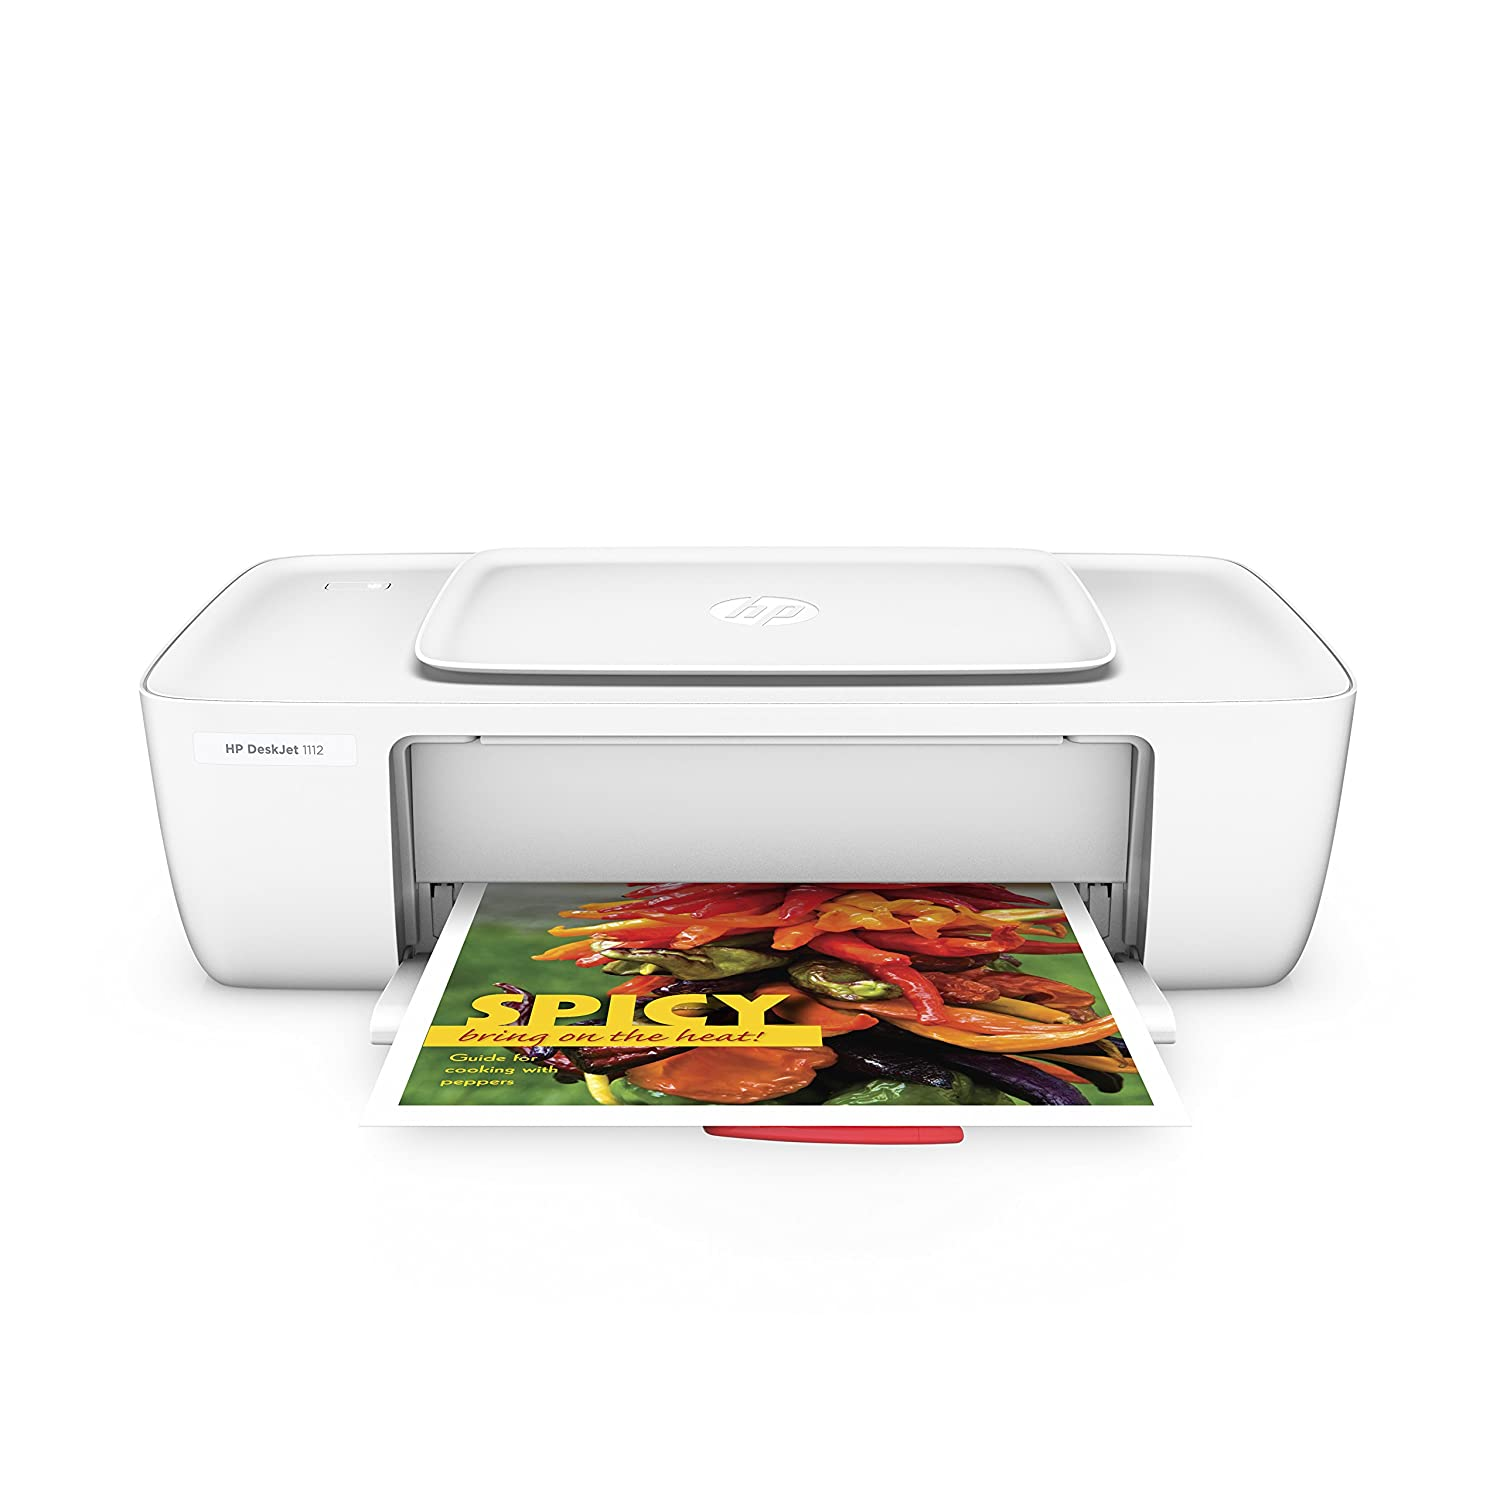 Top 11 Best Printers for College Students Reviews in 2019 3